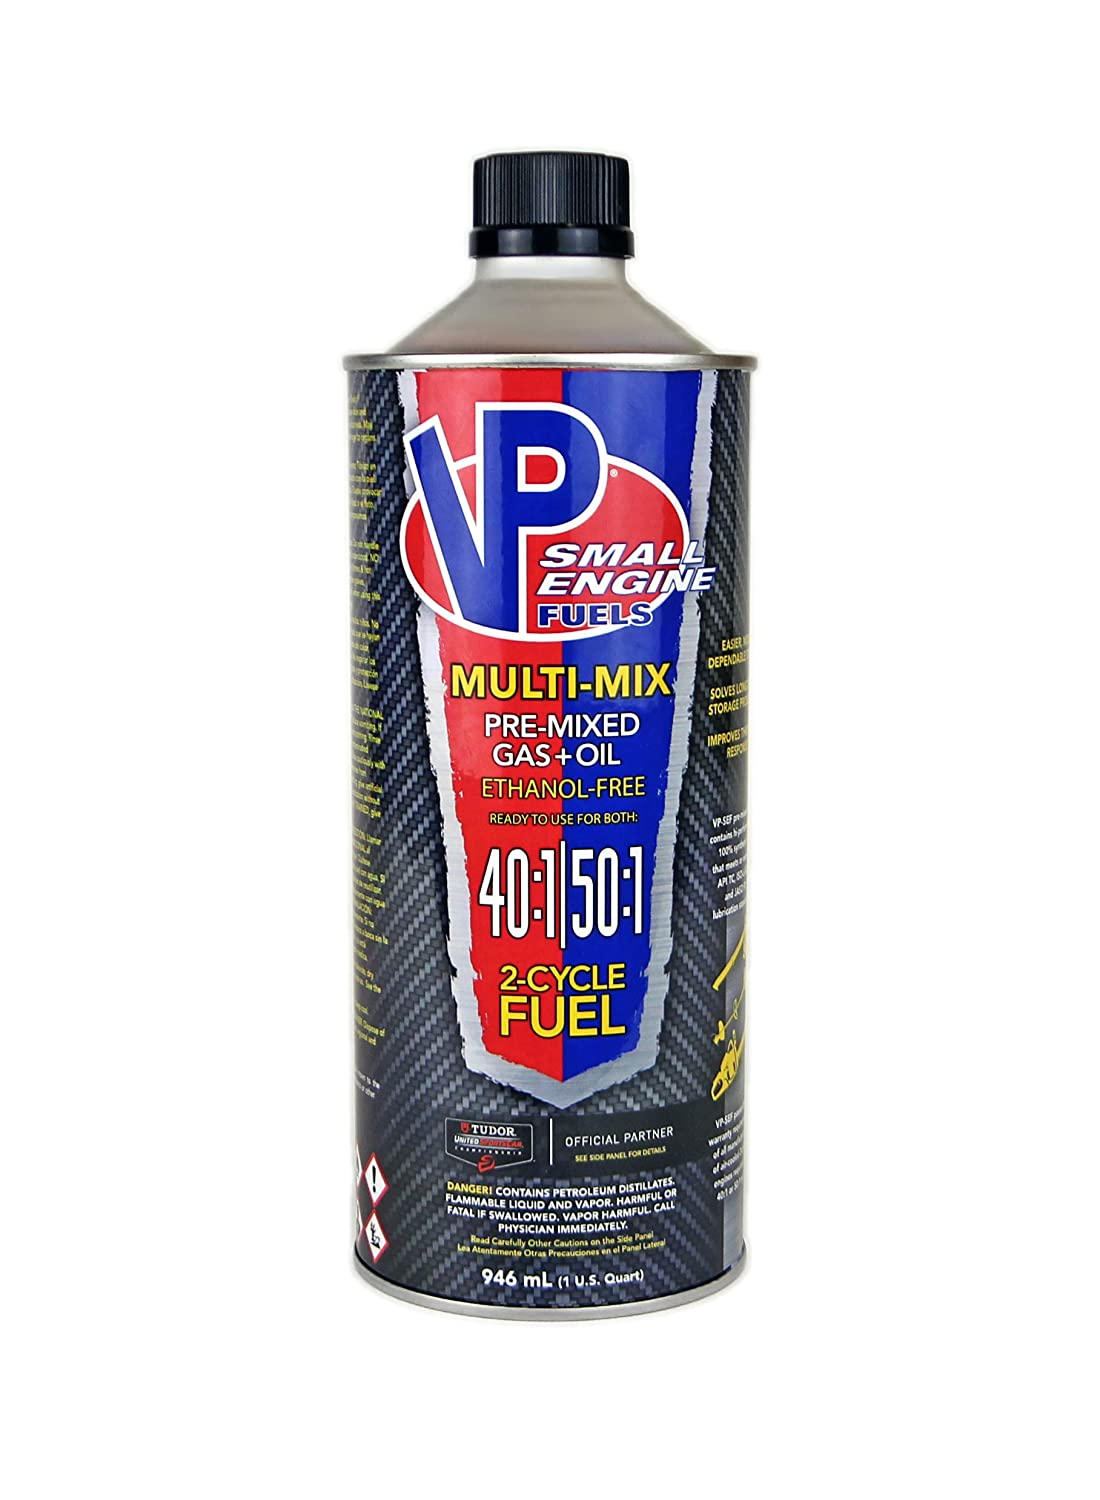 VP Small Engine Fuels 6818 Ethanol-Free JASO-FD Multi-Mix 40:1/50:1 2-Cycle Fuel - Case of 8 (32 oz)